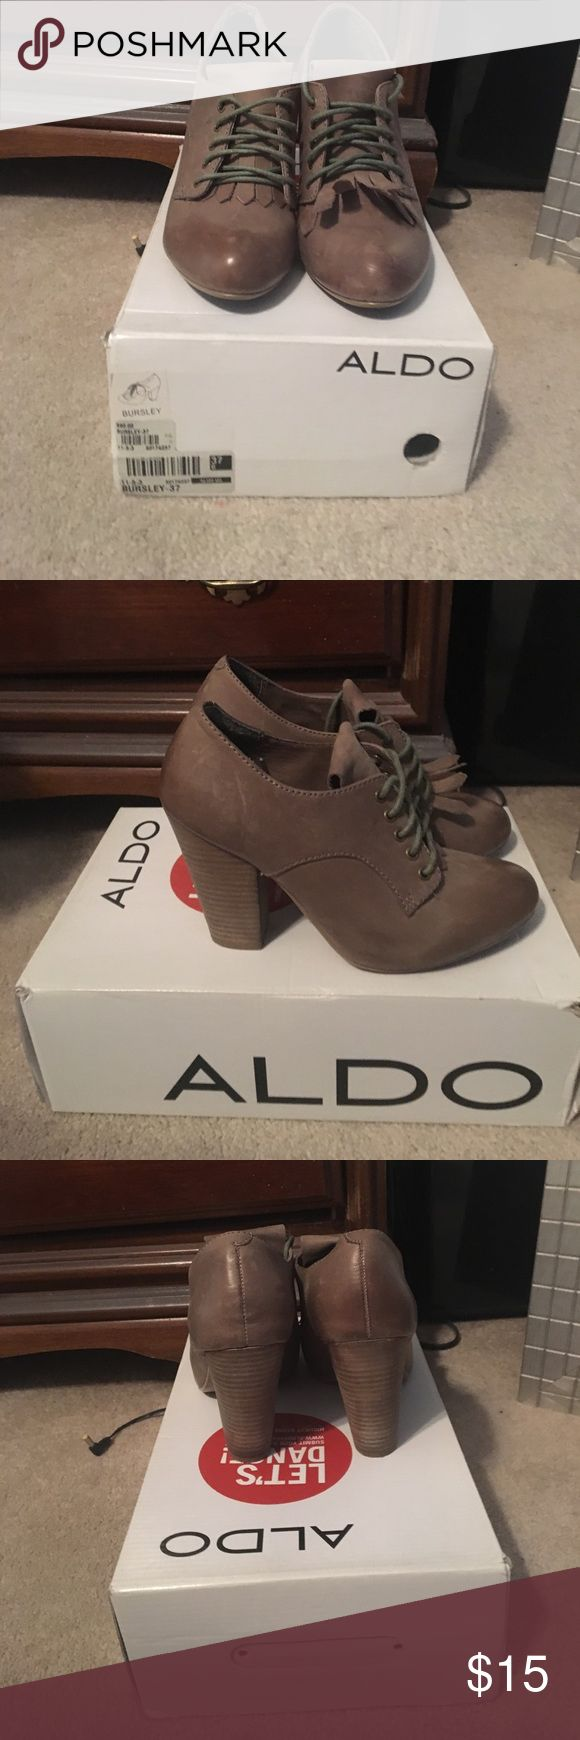 "Also Lace Up Block Heels Also Lace Up Block Heels. Size 37 (7) these run true to size in my opinion, I am no longer a 7 so I cannot fit them. All signs of wear depicted in photos and comes w original box/tissue paper. Heel height approximately 3 1/2"". Grey/taupe color. Aldo Shoes Heels"